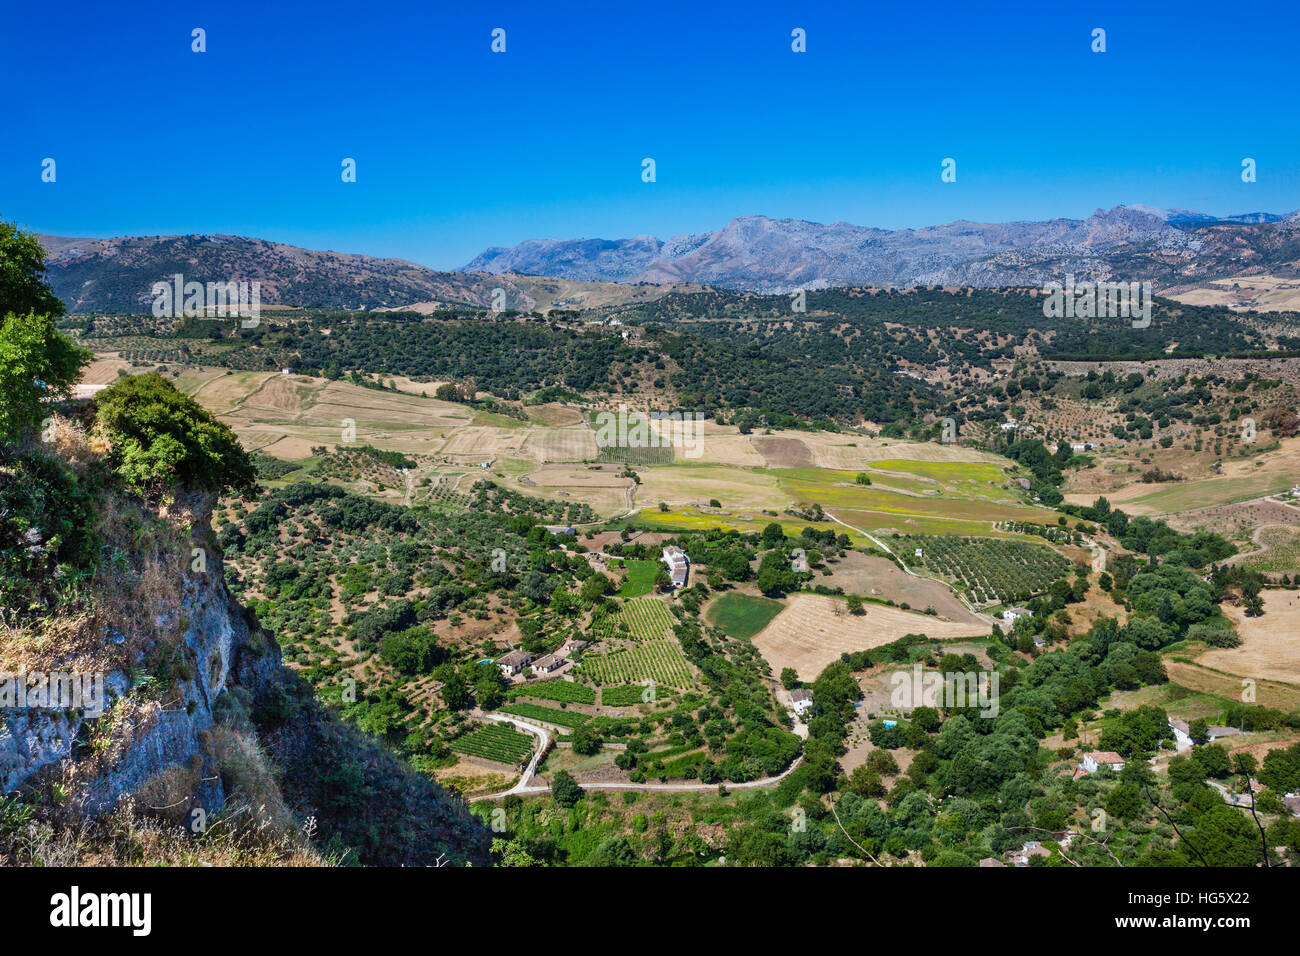 Spain, Andalusia, Province of Malag, Ronda, view of the countryside and the surrounding Sierras from Mirado de Ronda - Stock Image